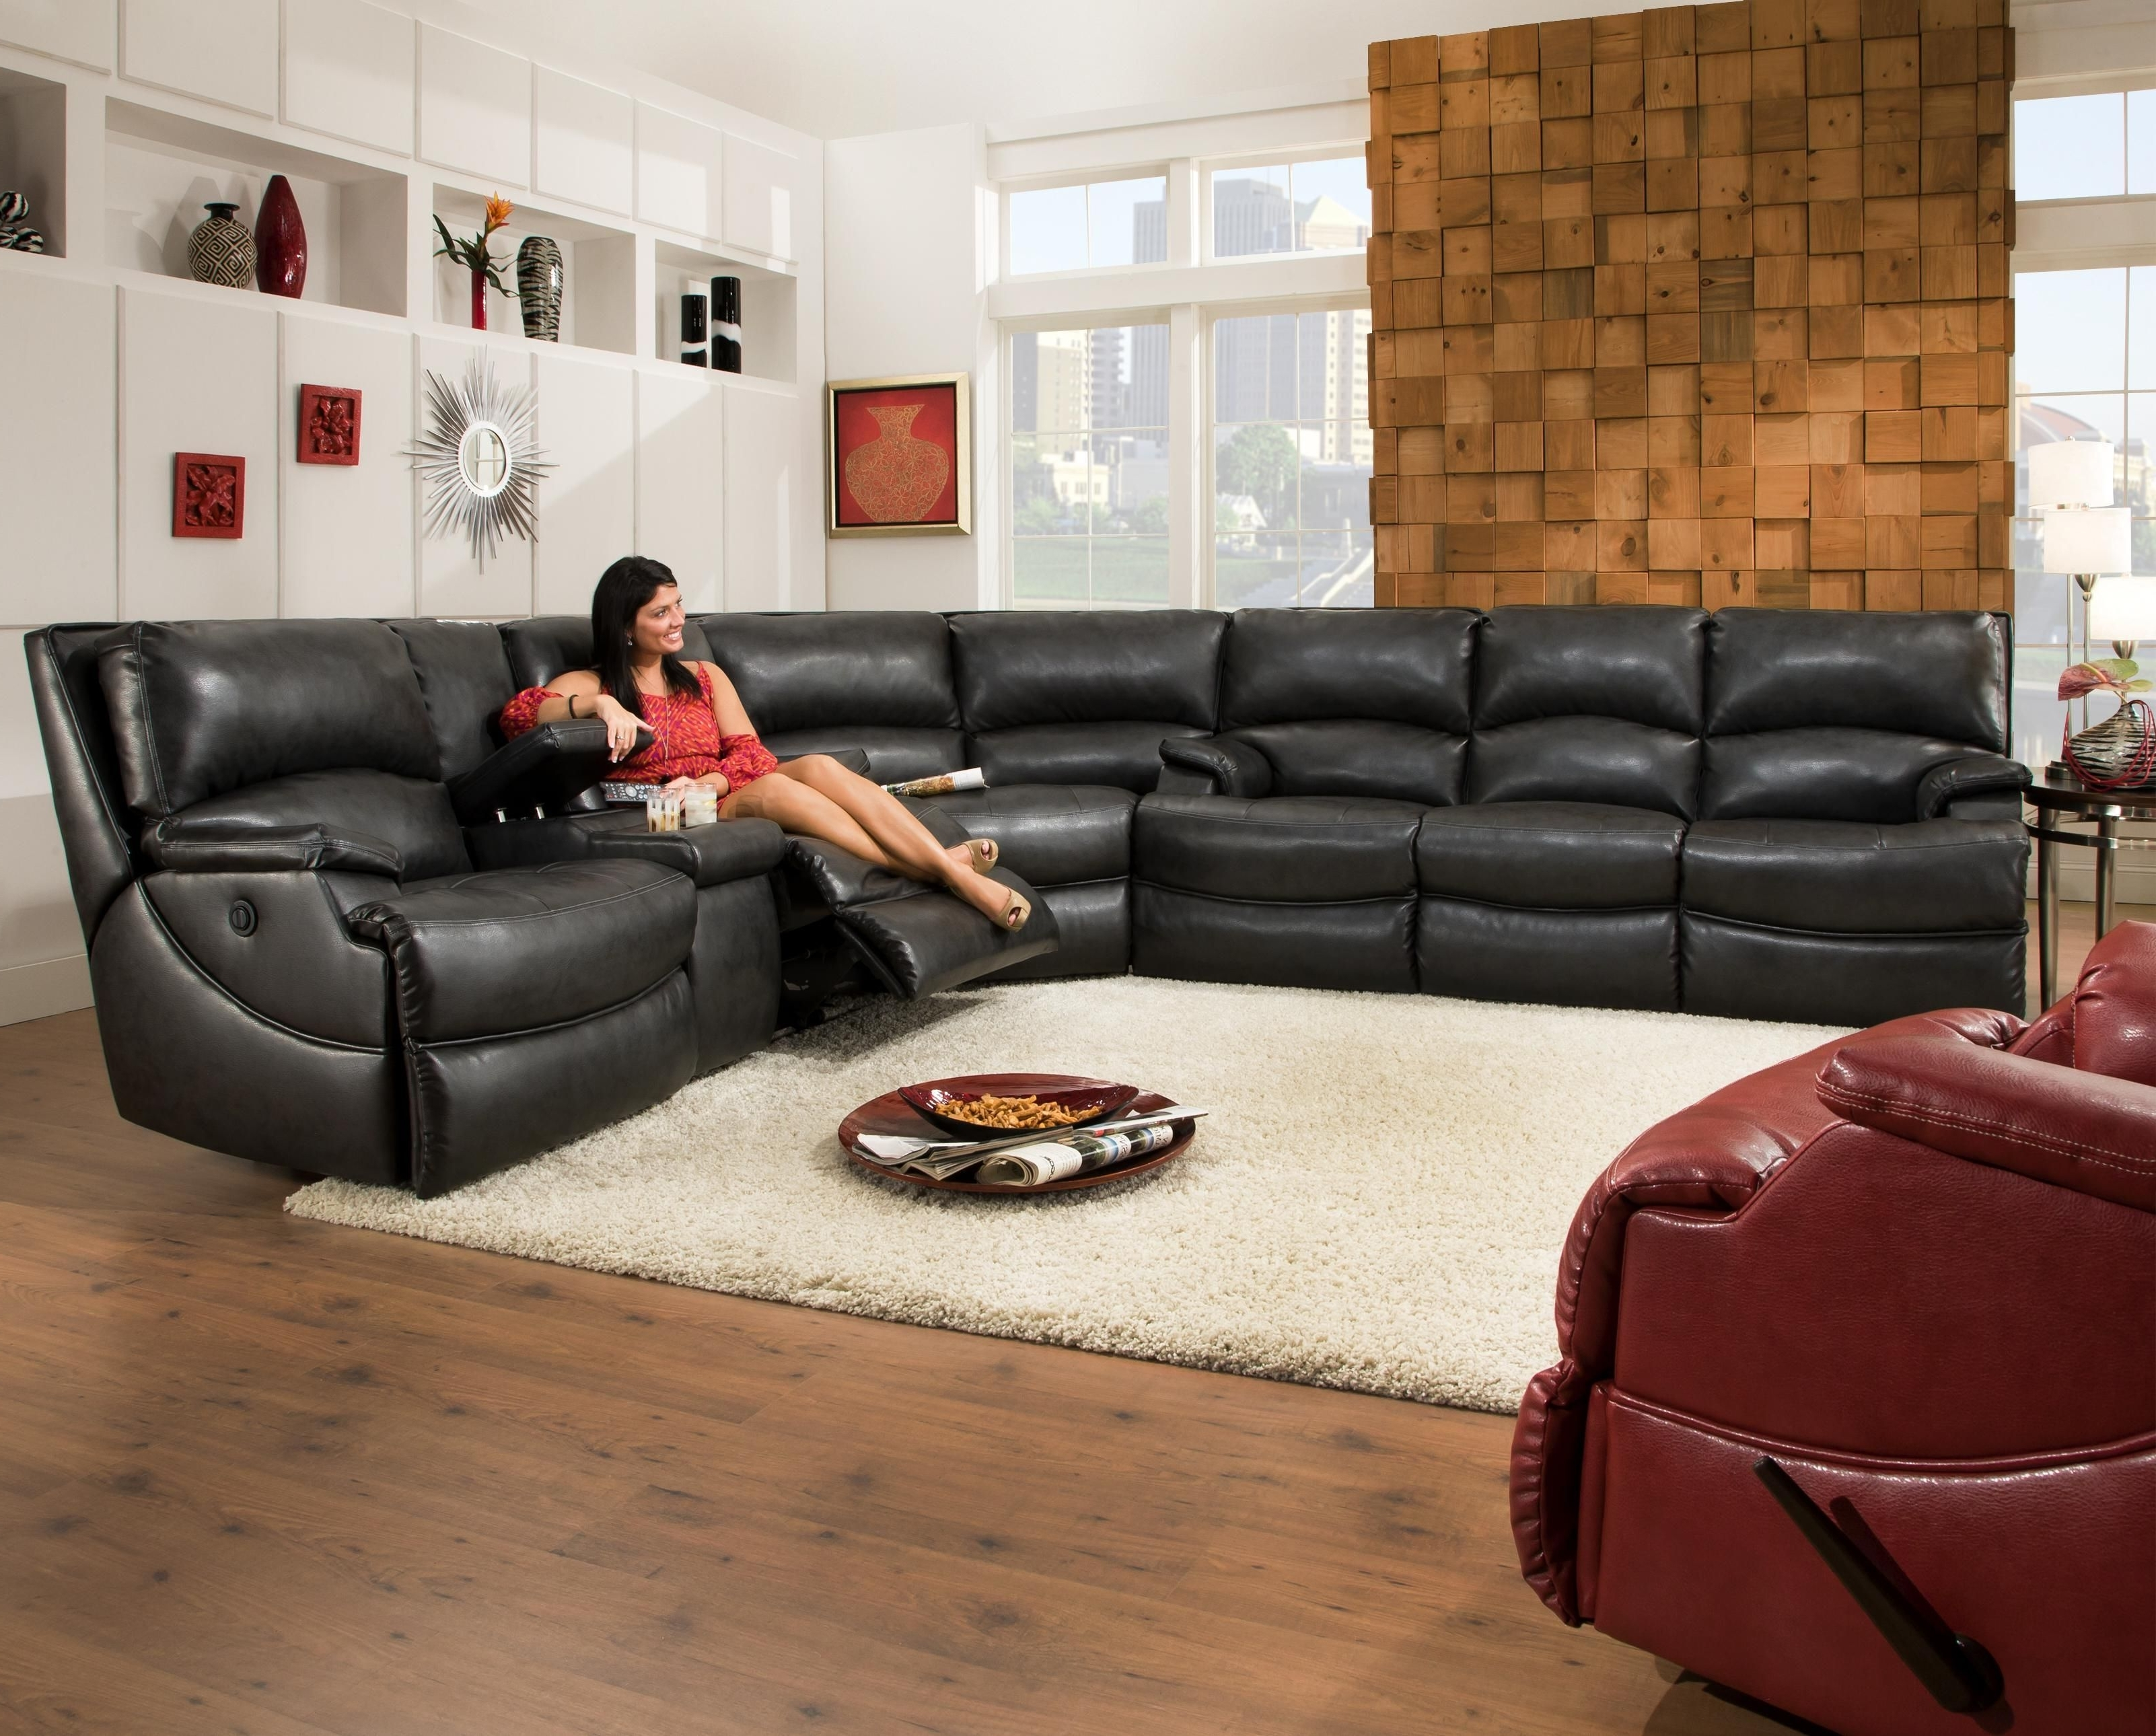 Most Recent Southern Motion Shazam Six Seat Reclining Sectional Sofa With Cup With Regard To Sectional Sofas With Consoles (View 4 of 15)